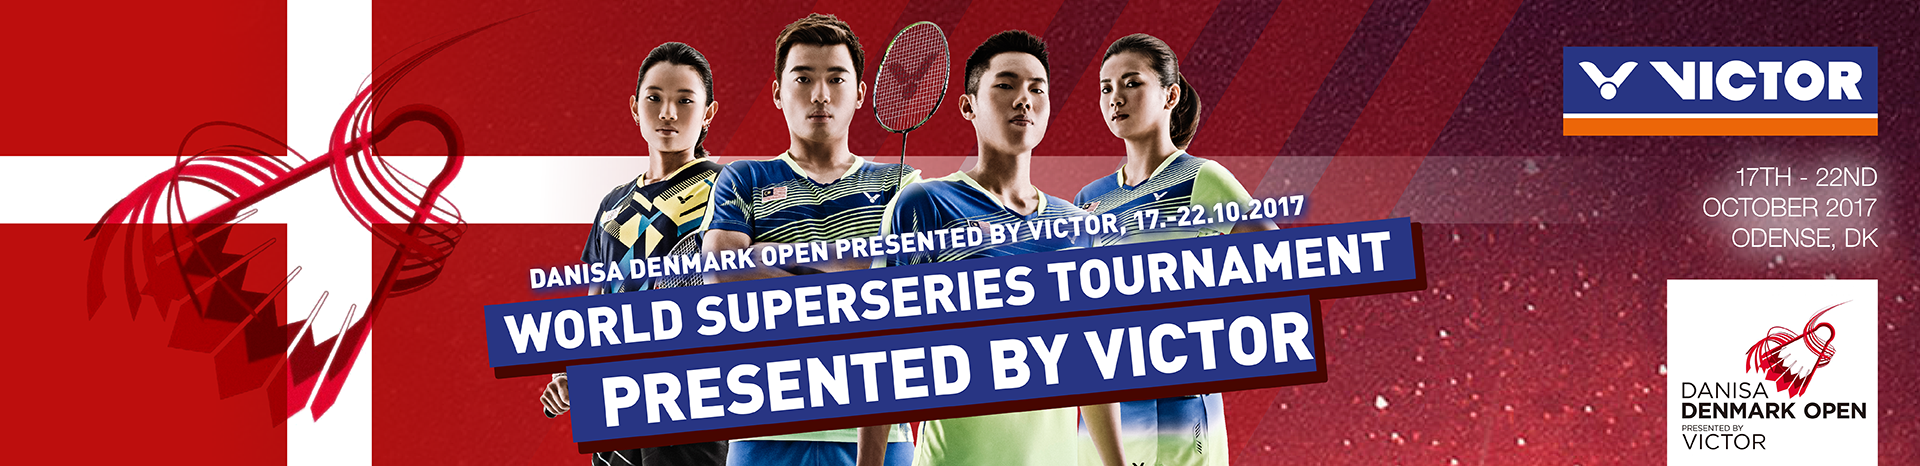 World superseries tournament presented by victor